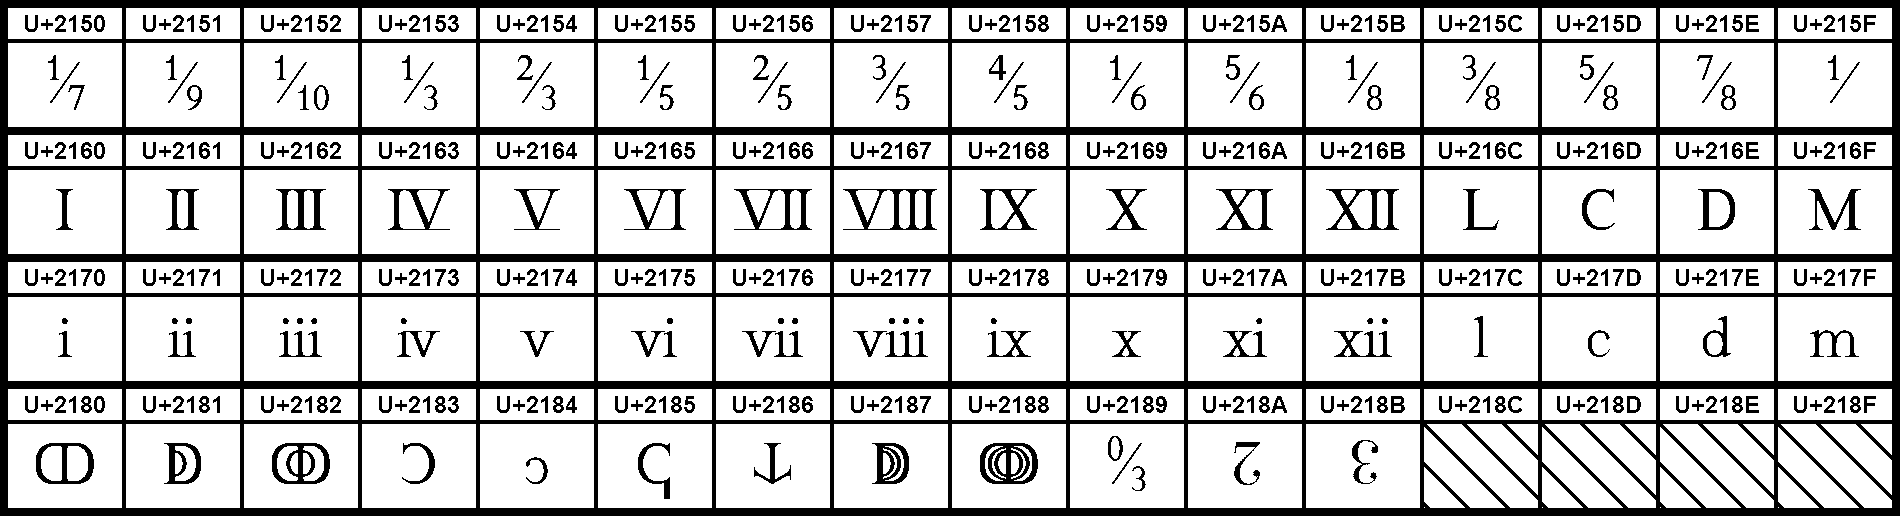 UCB Number Forms.png